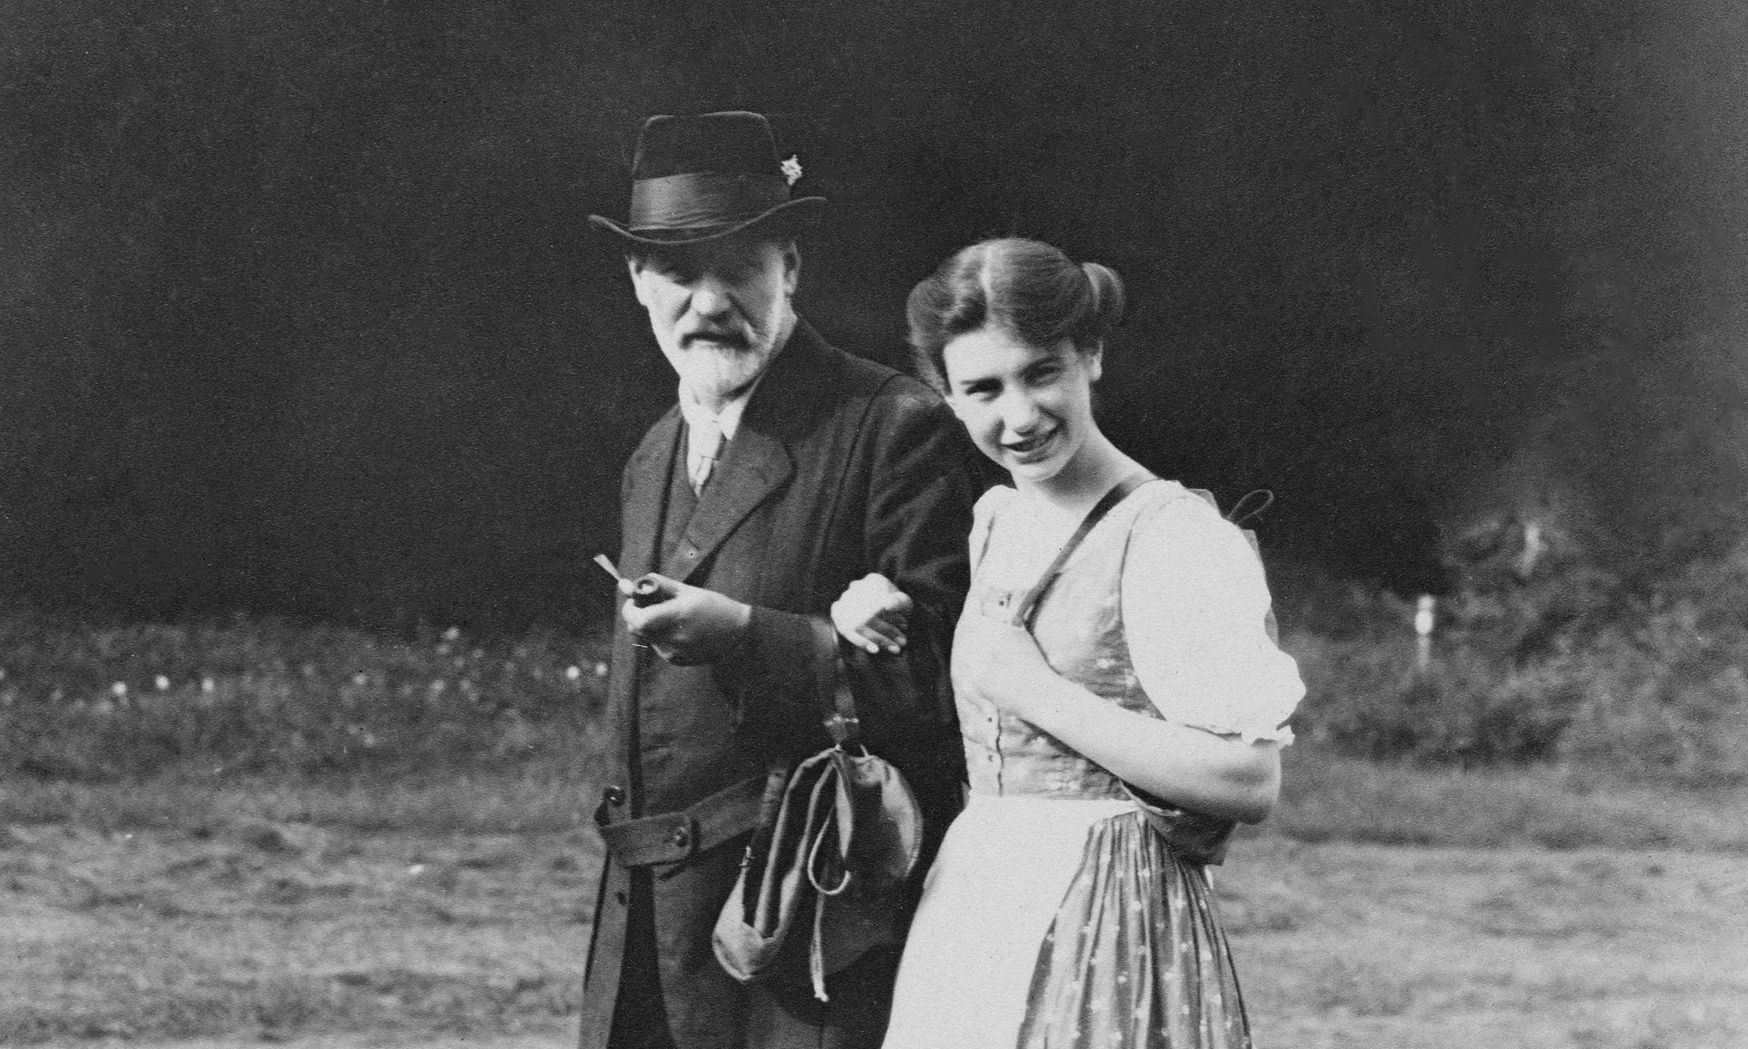 Black and white photograph of Sigmund and Anna Freud walking arm in arm and looking at the camera